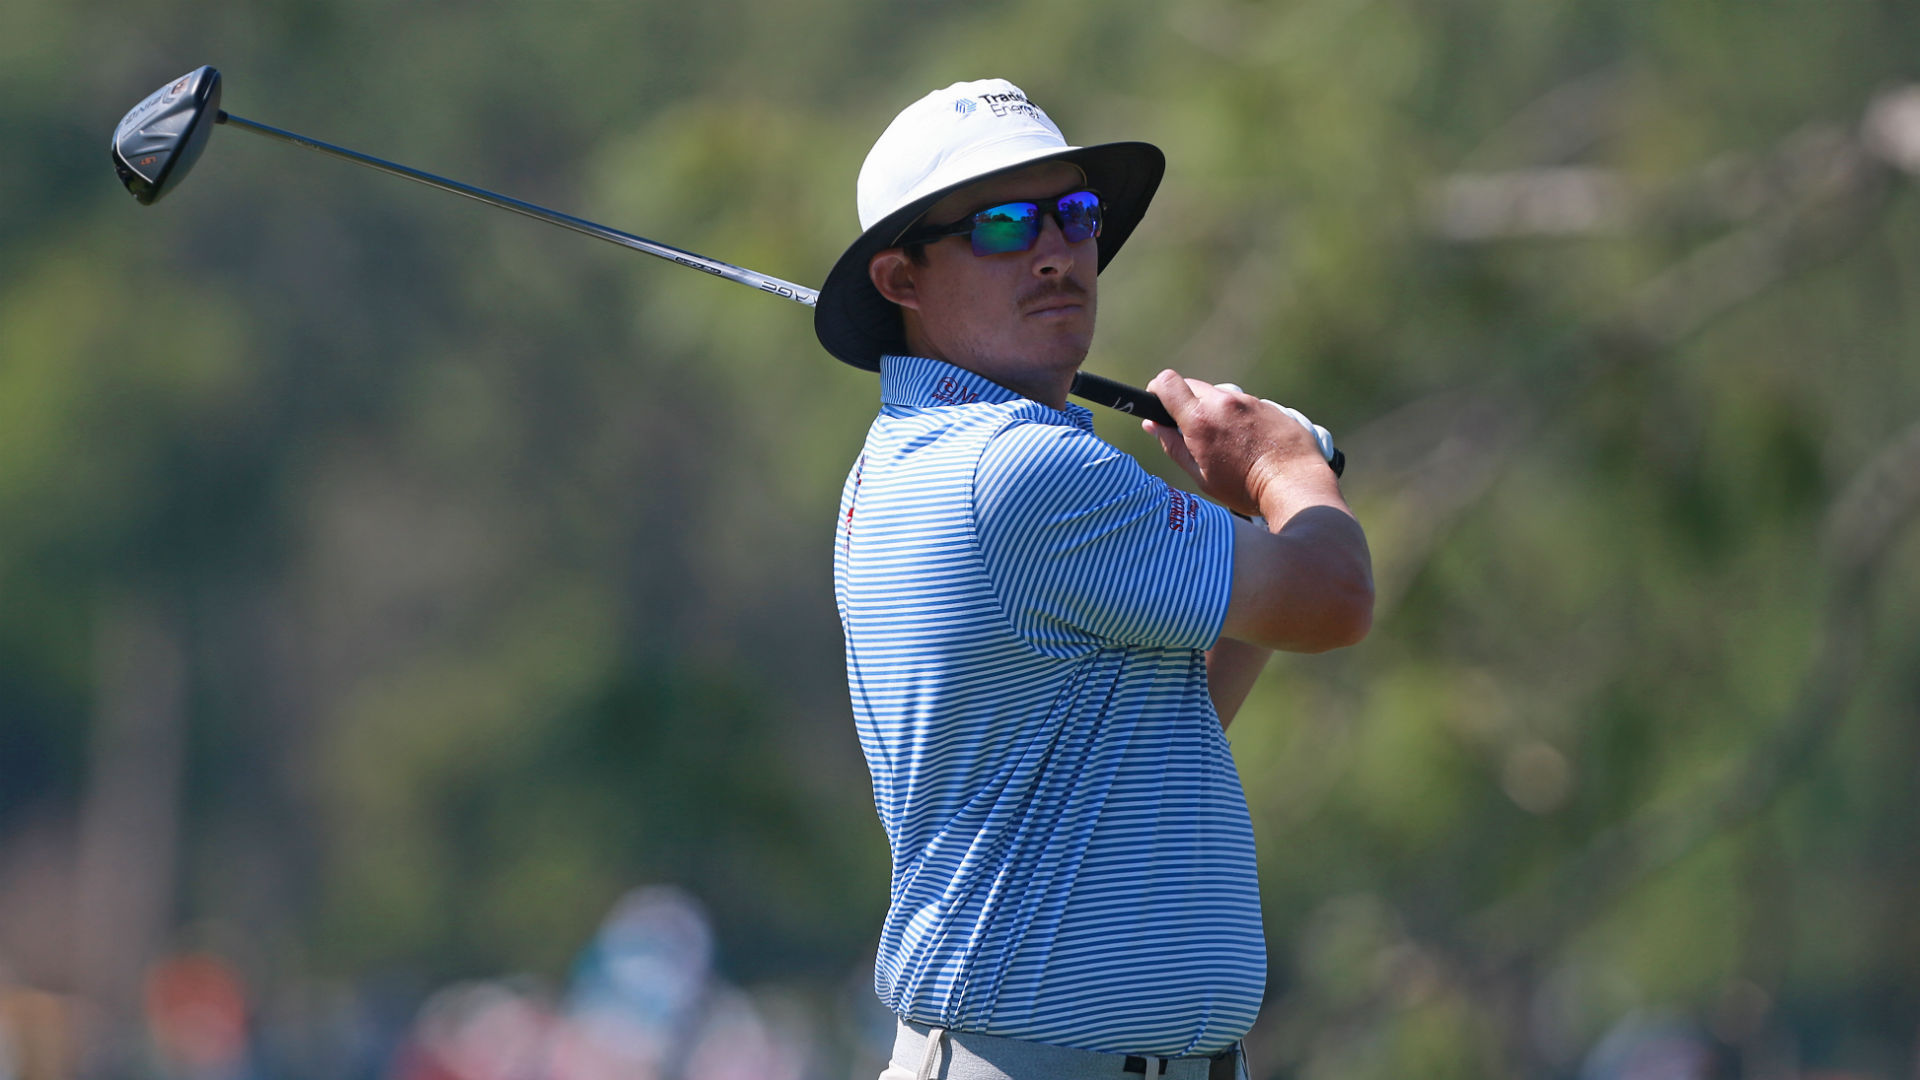 Valspar Championship: Jason Kokrak makes hole-in-one, temporarily ties lead